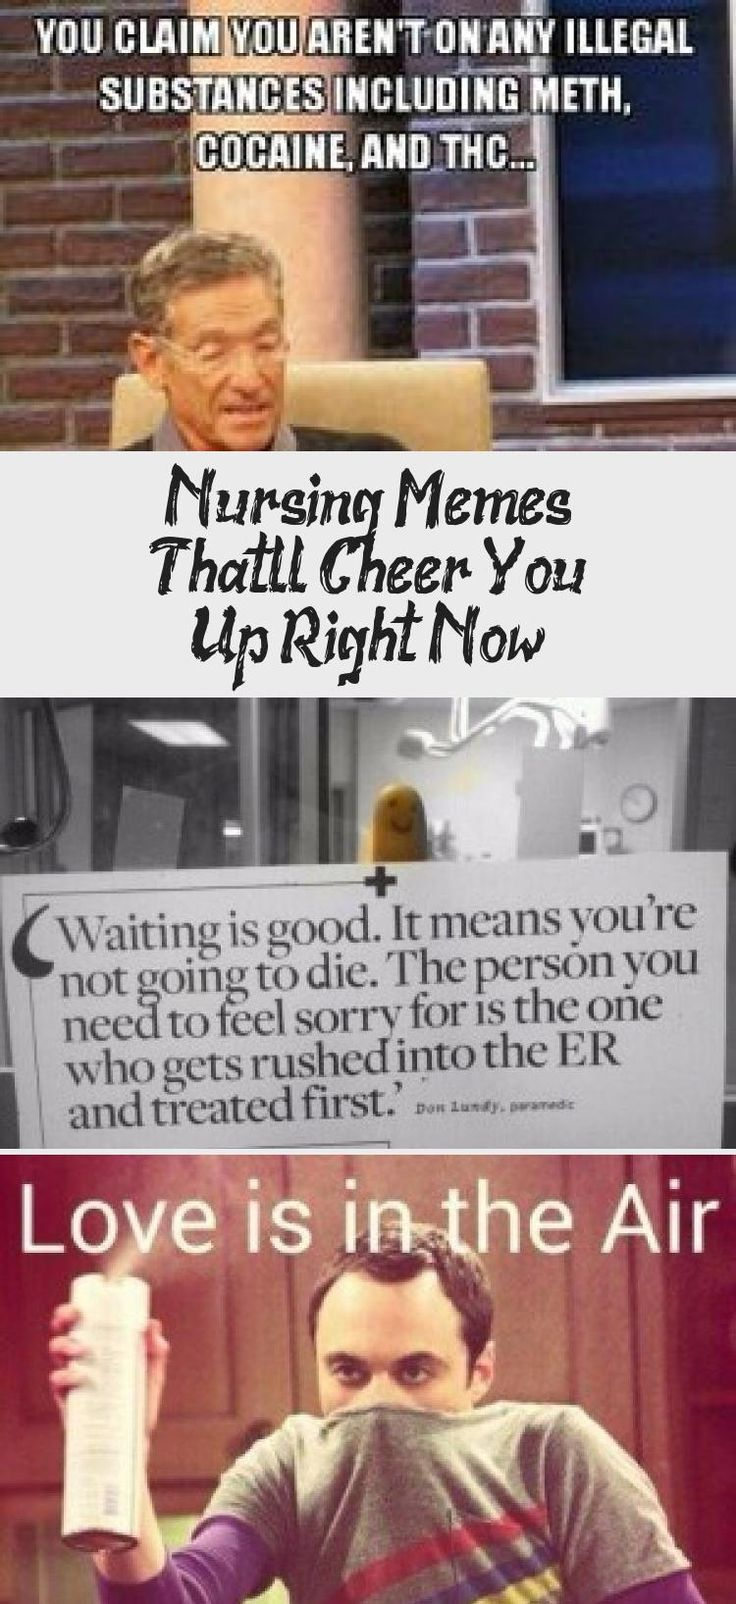 Nursing Memes That'll Cheer You Up Right Now in 2020